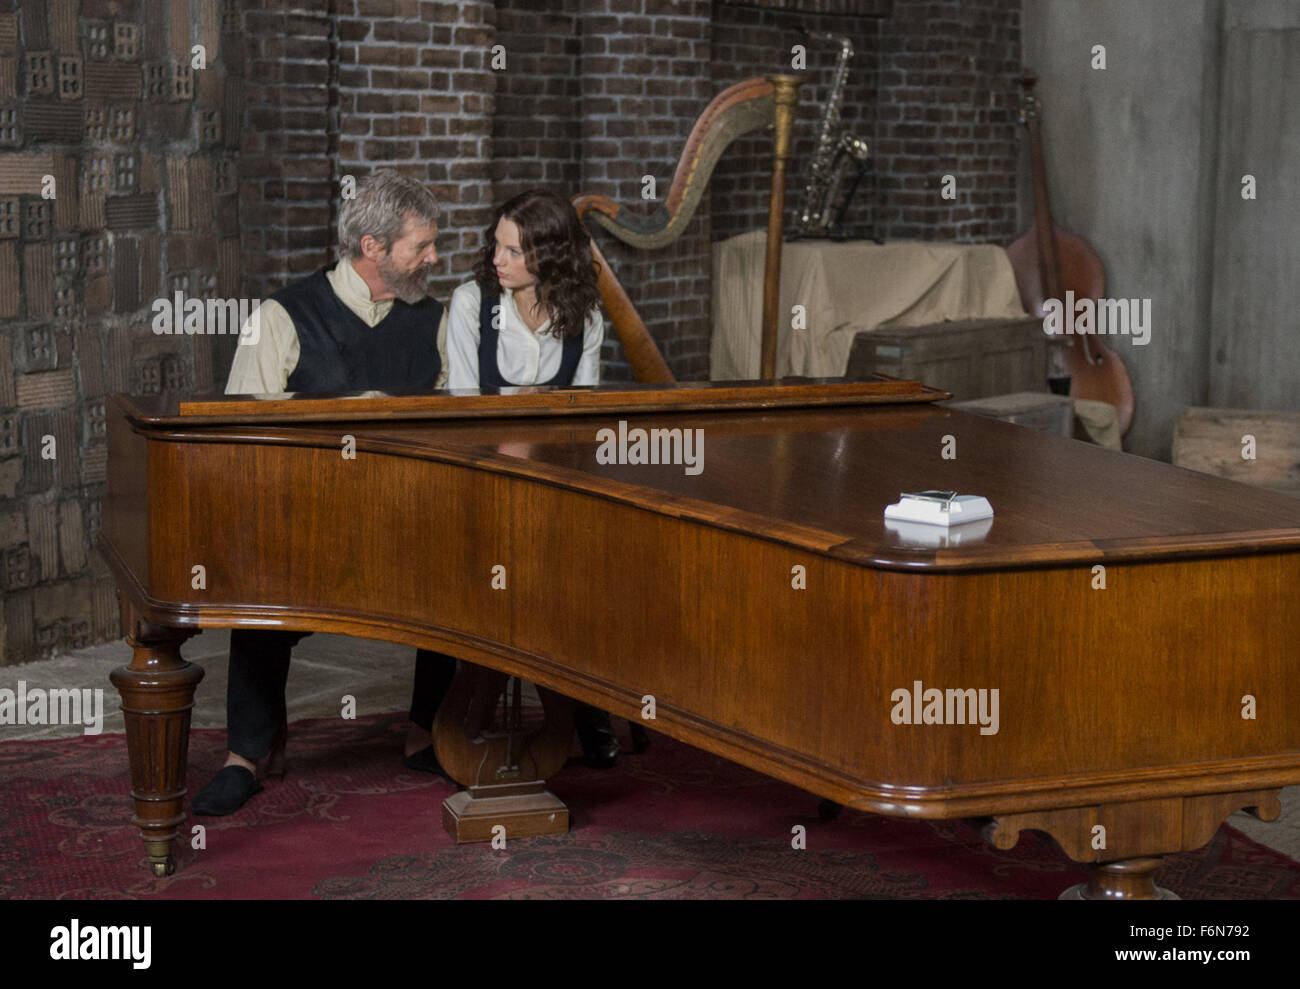 Sept 9 2014 Los Angeles Movie Stills THE GIVER 2014JEFF